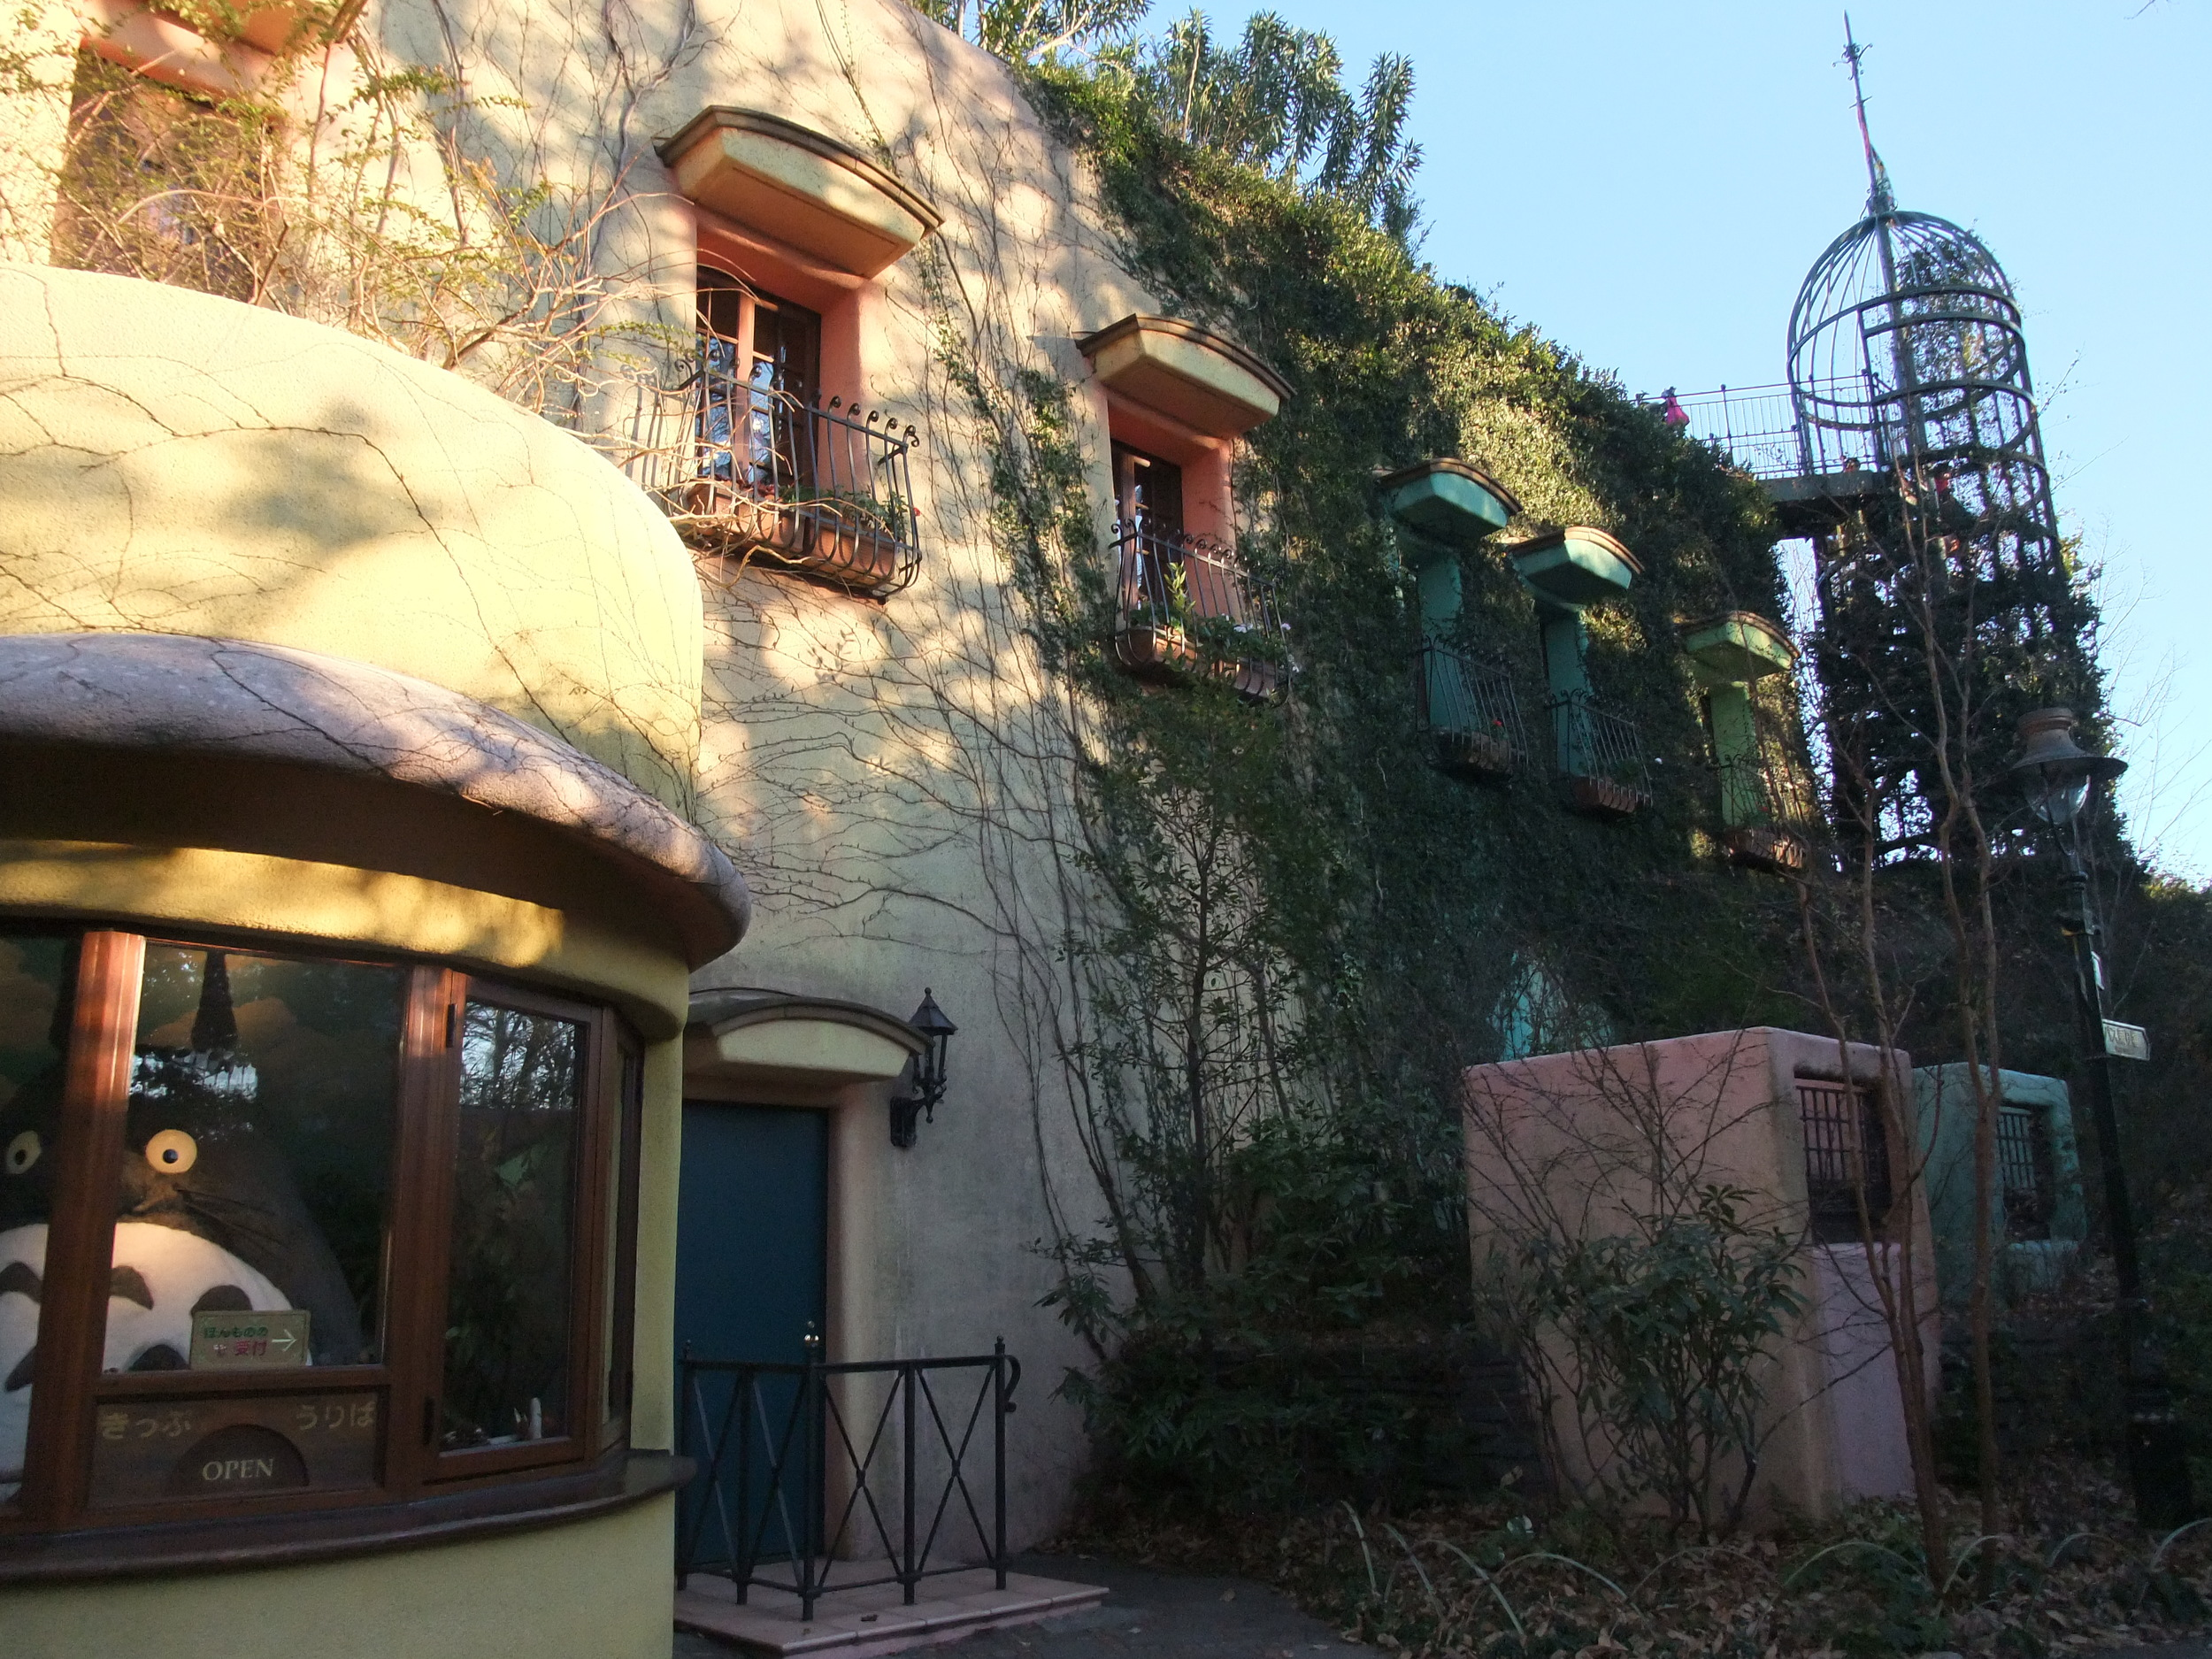 The outside of the Studio Ghibli Museum (yes, that's Totoro in the ticket booth)